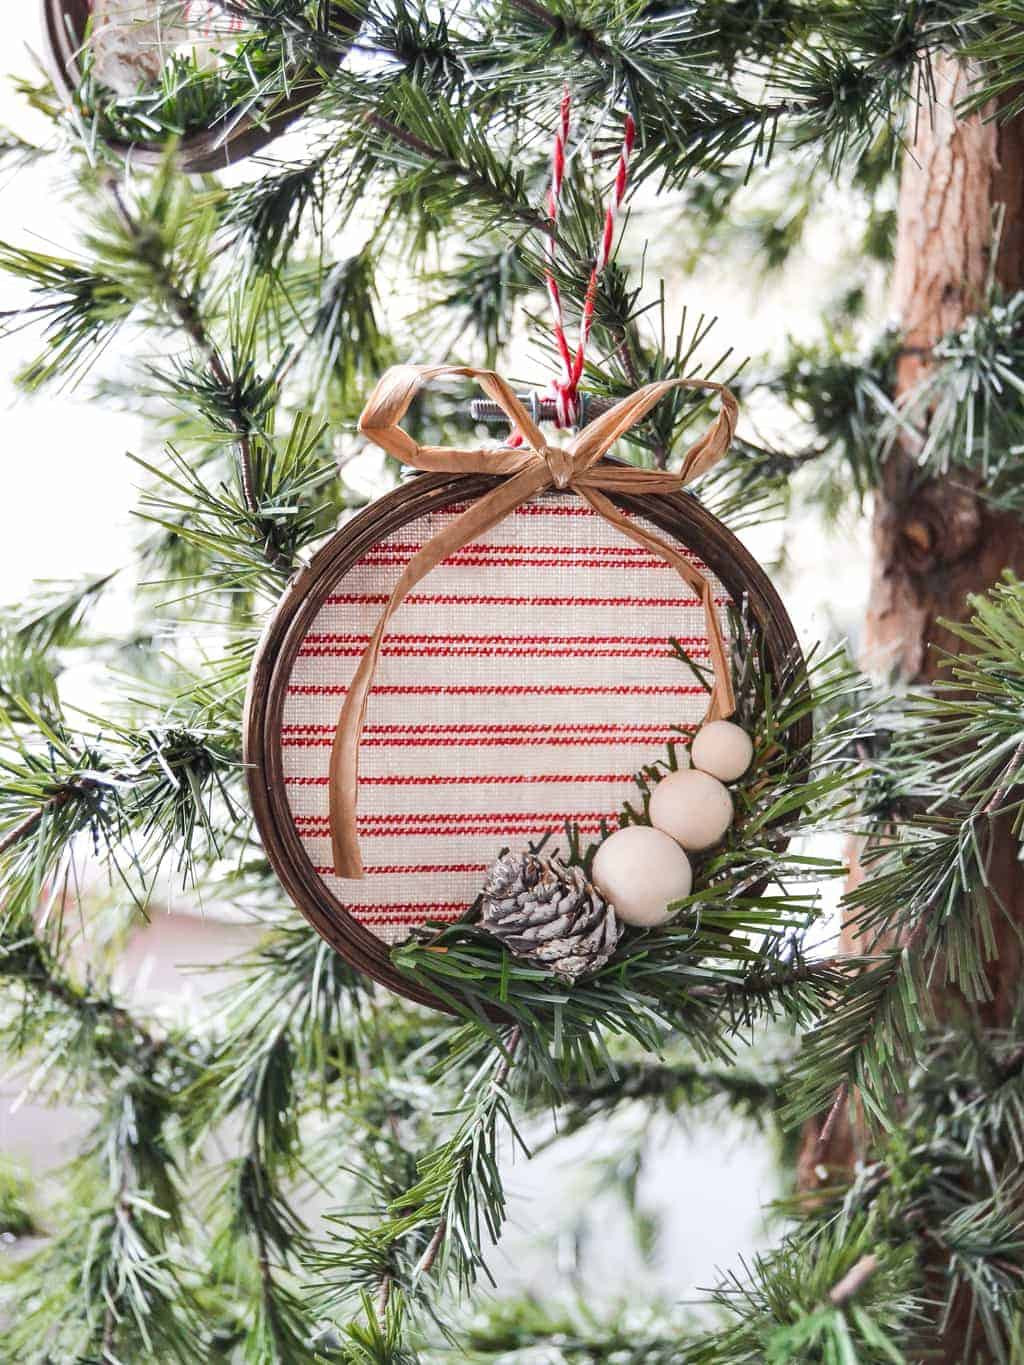 DIY Christmas Ornaments With Pictures  Homemade Christmas Ornaments 90 Options My Creative Days